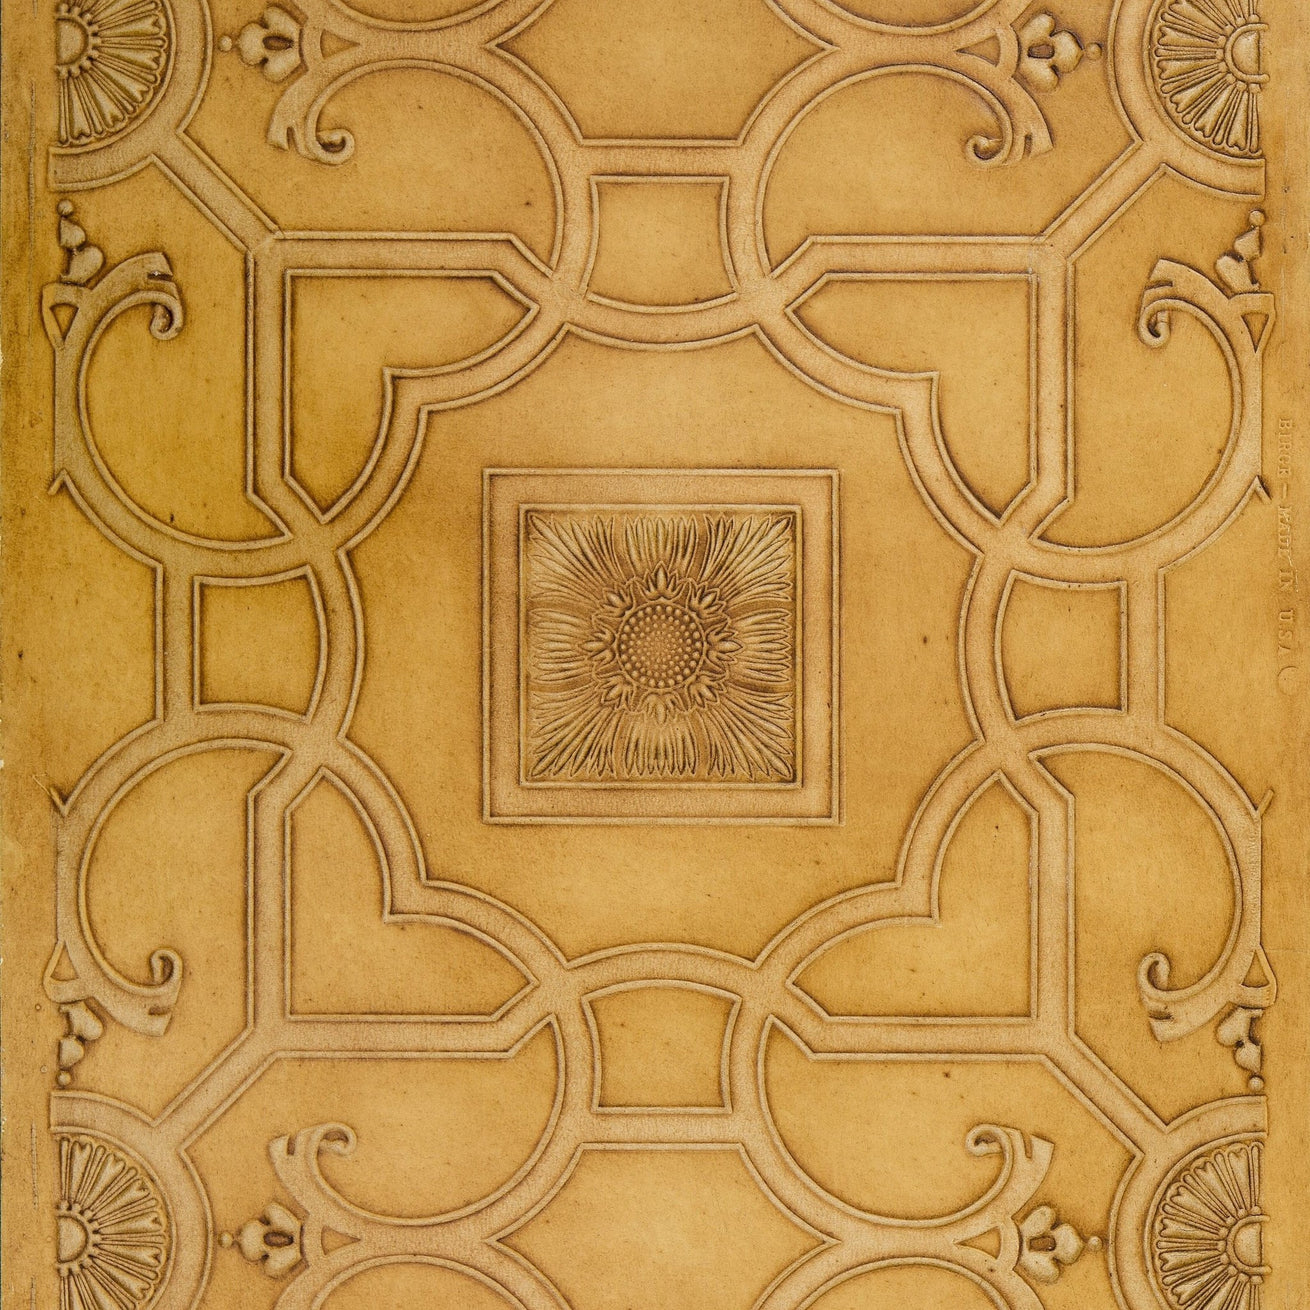 Embossed Ceiling Design of Raised Moldings - Antique Wallpaper Remnant